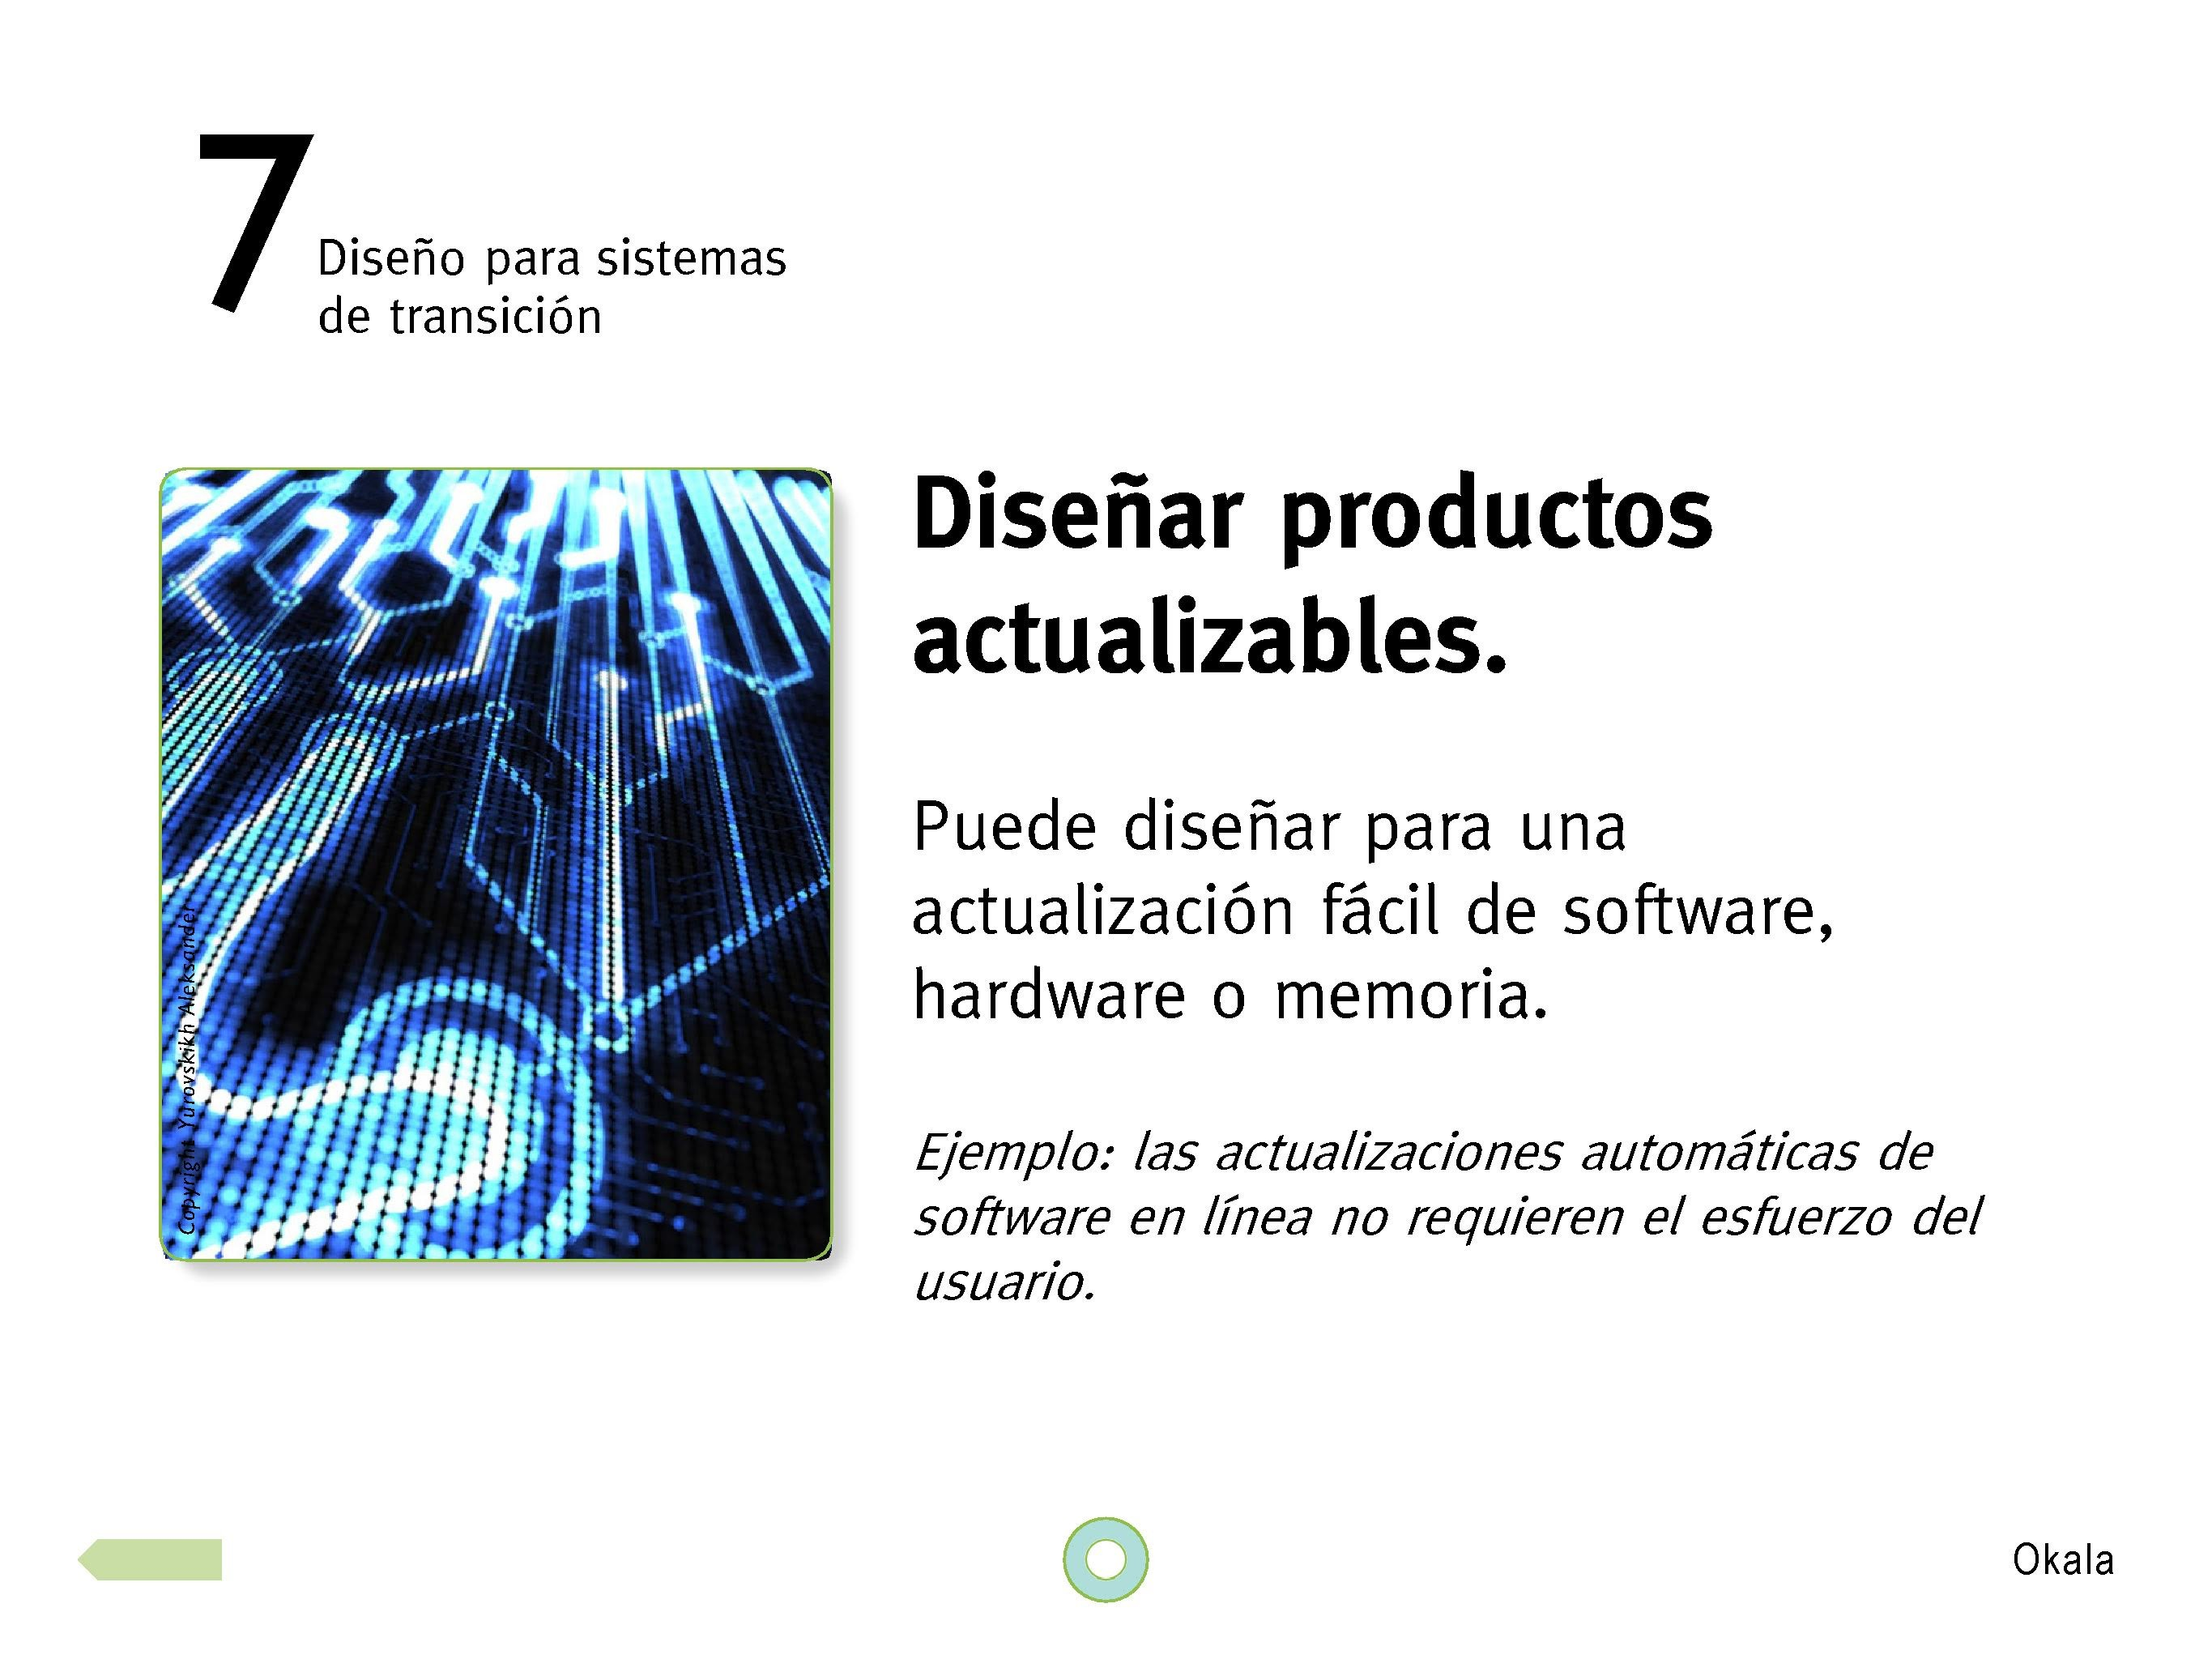 okala-ecodesign-strategy-guide-2012-spanish.new_page_38-1